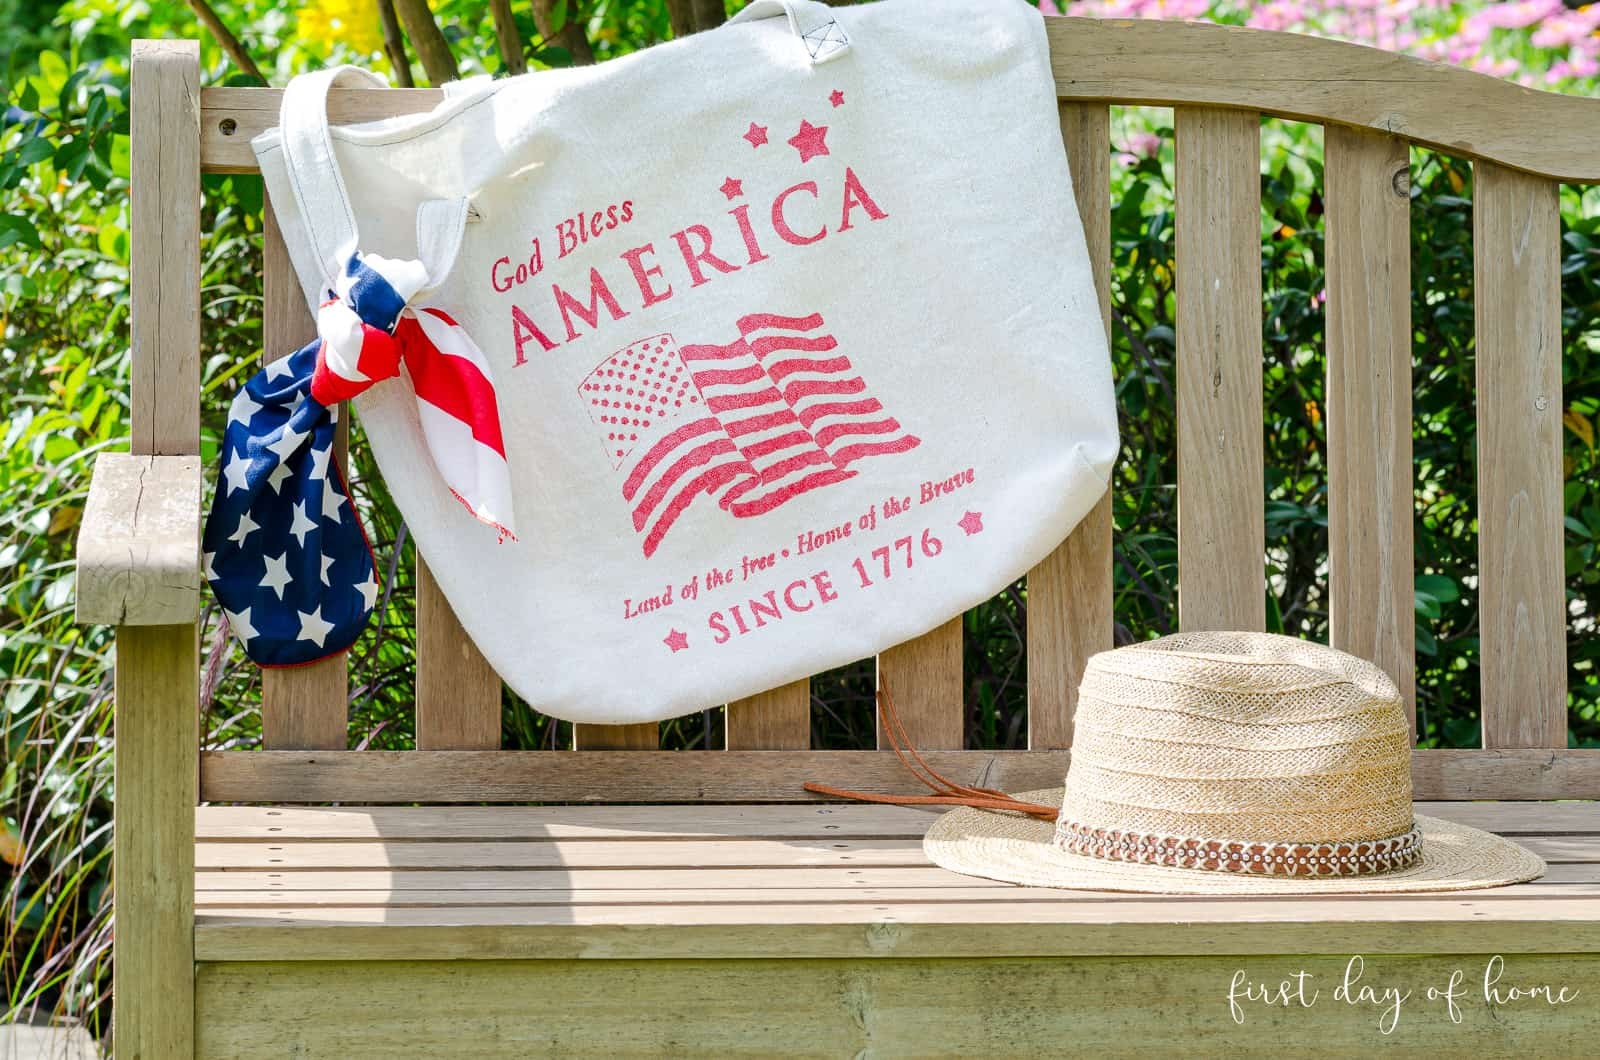 Canvas bag painting project with stenciled patriotic design